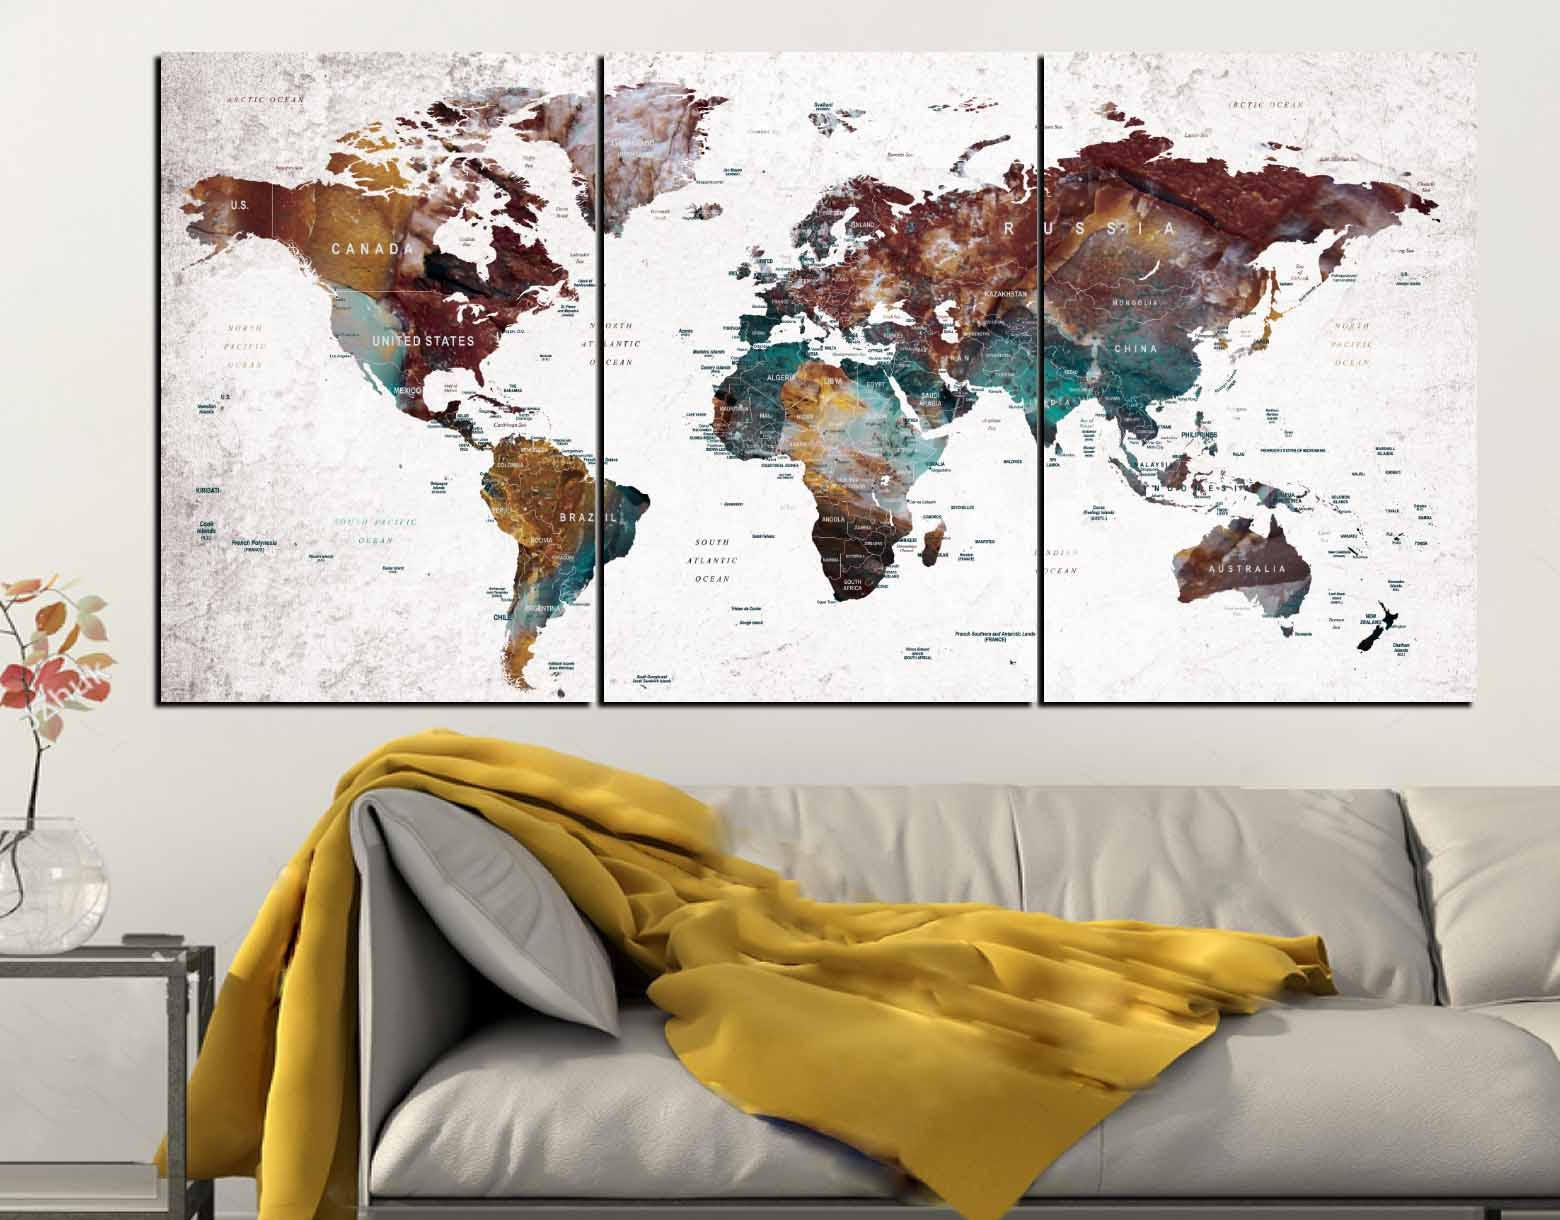 World map push pin wall art canvas panelsworld map wall artworld world map push pin wall art canvas panelsworld map wall artworld map canvasworld map artabstract world map artworld map travelmap art gumiabroncs Image collections